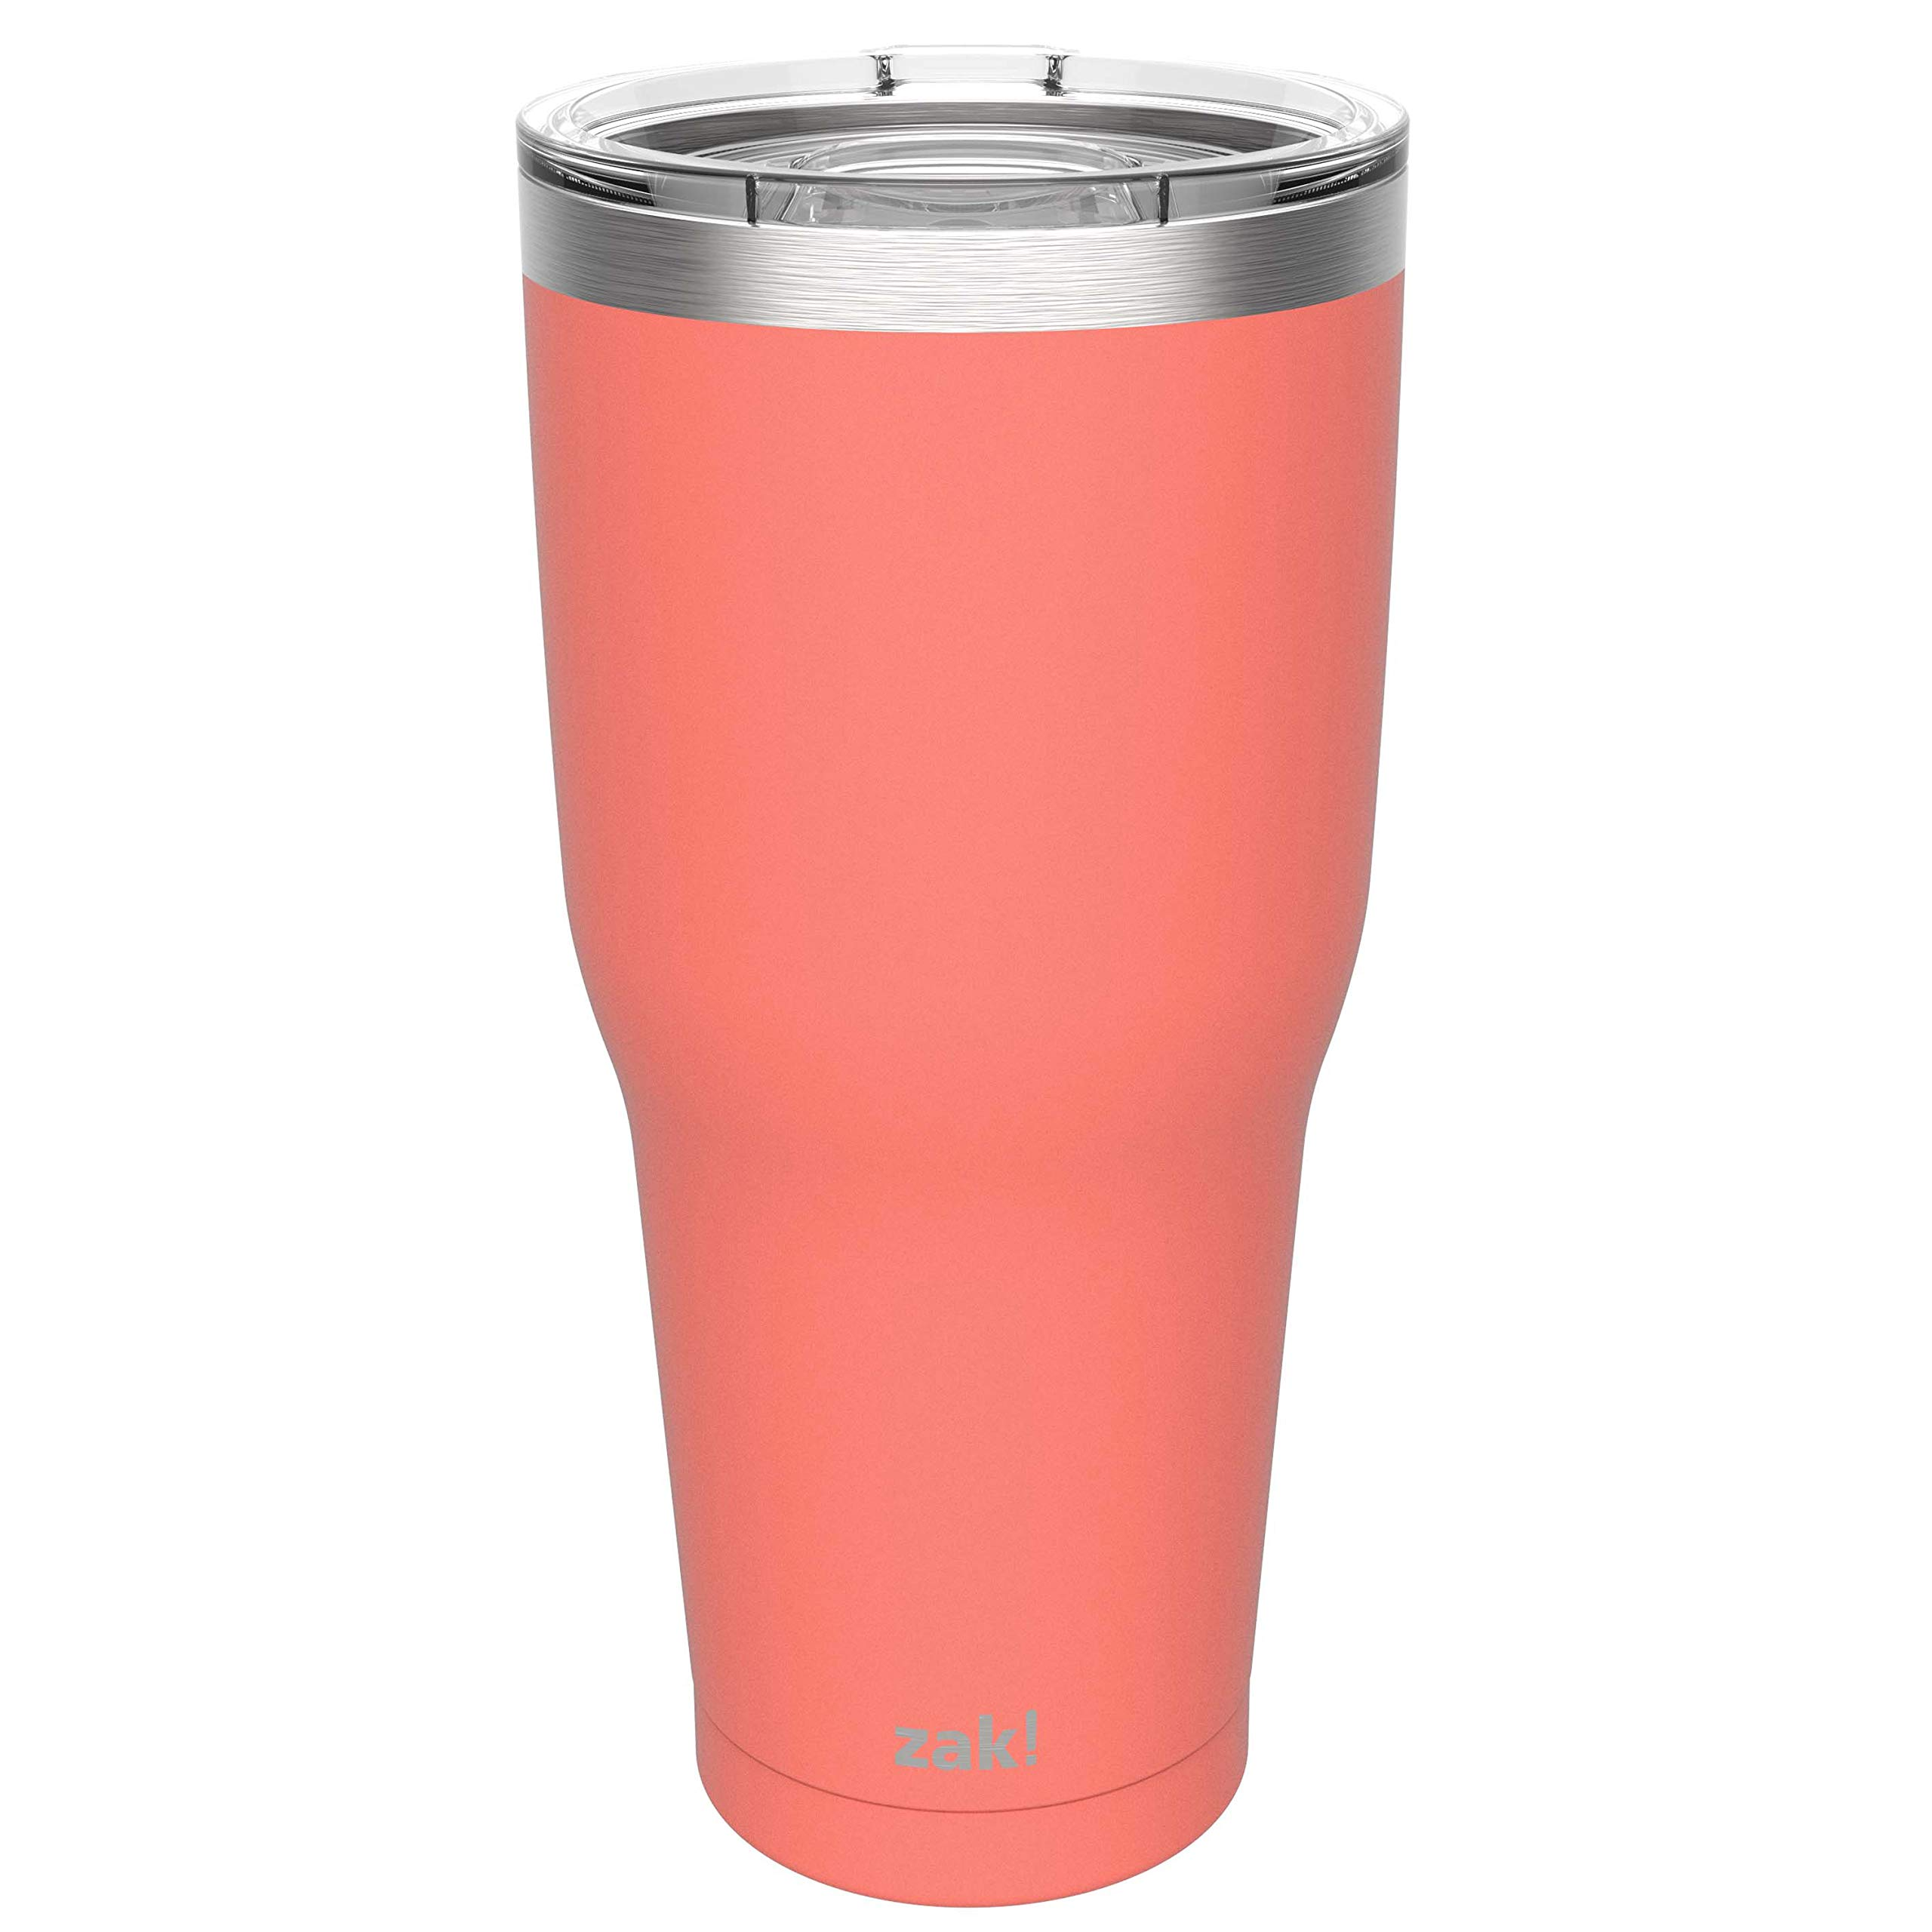 eee1948522c Zak Designs 30oz Stainless Steel Double Wall Vacuum Insulated Tumbler with  Lid - This Splash Proof Travel Mug fits in Most Cup Holders and Keeps  Beverage ...